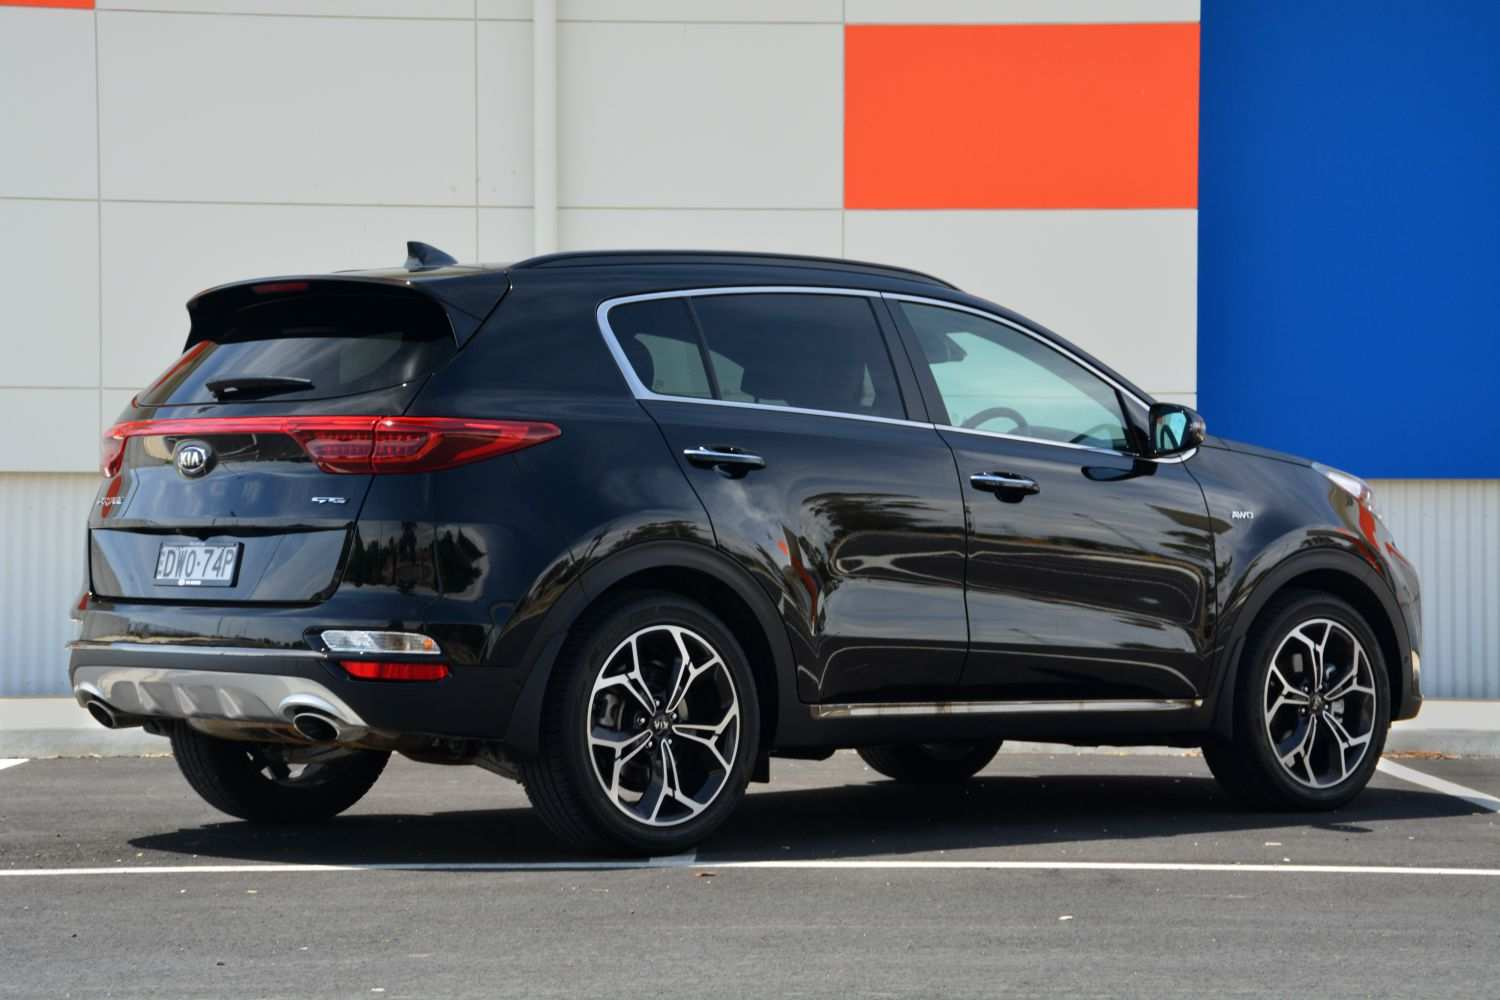 96 All New Kia Sportage Gt Line 2019 Redesign and Concept with Kia Sportage Gt Line 2019